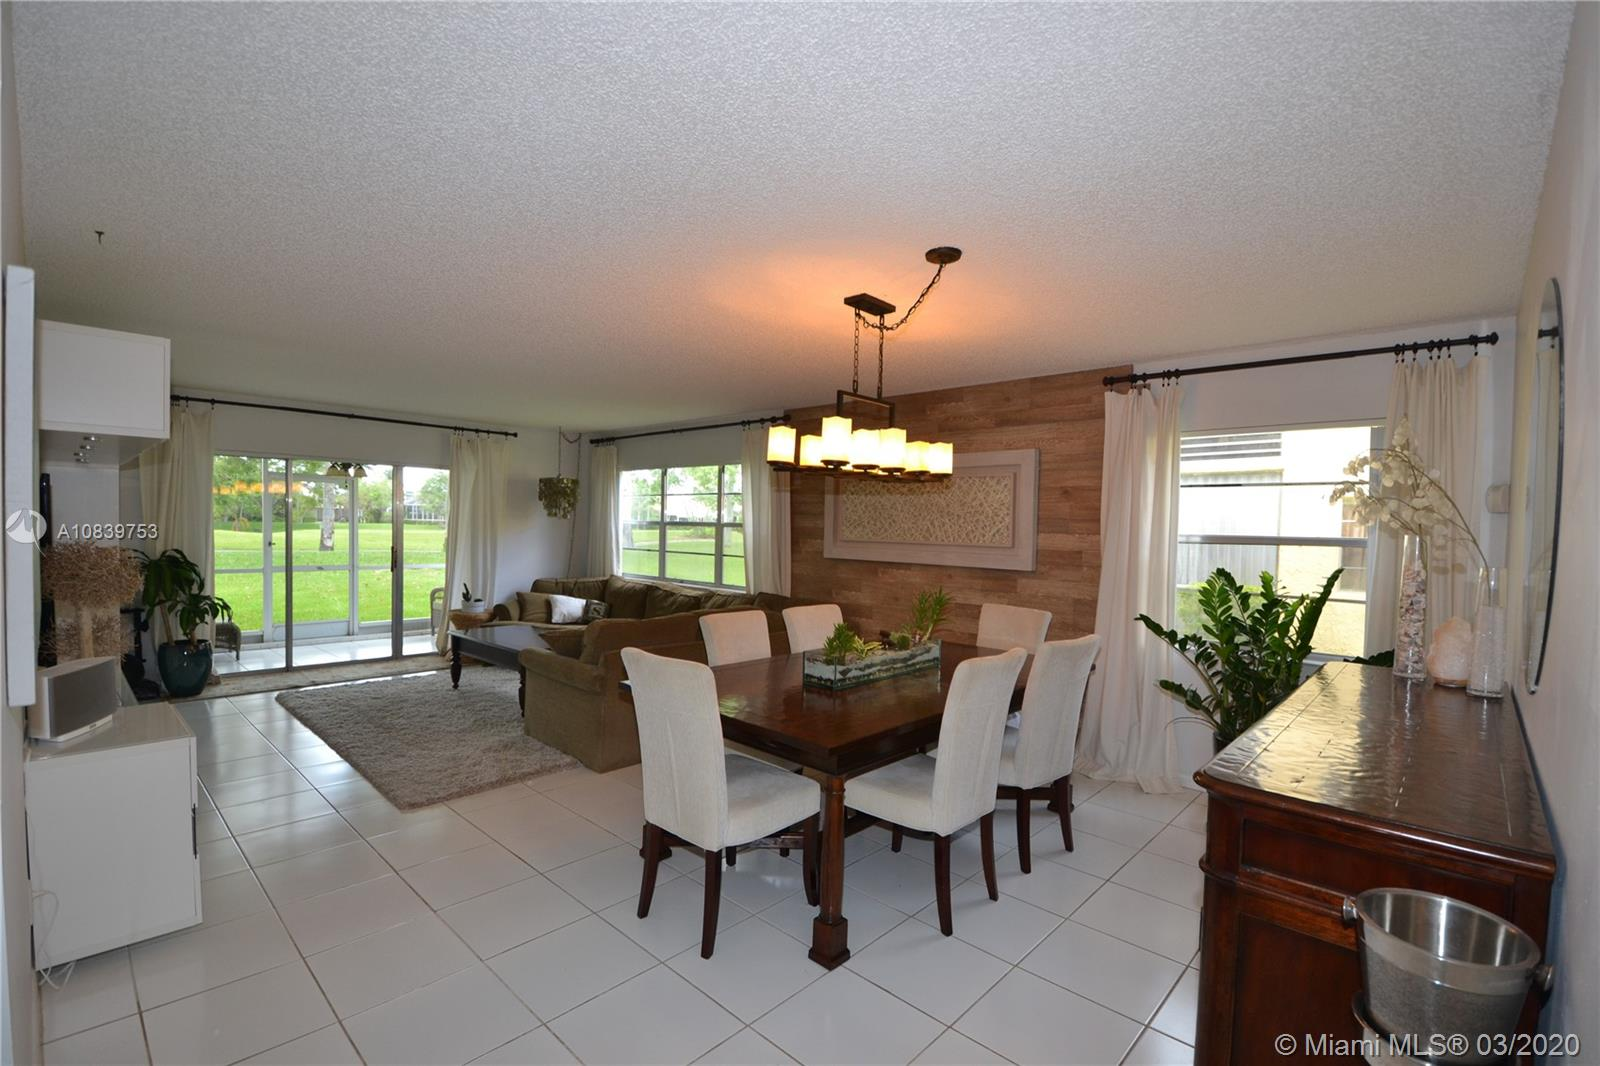 10131 NW 35 st, Coral Springs, FL 33065